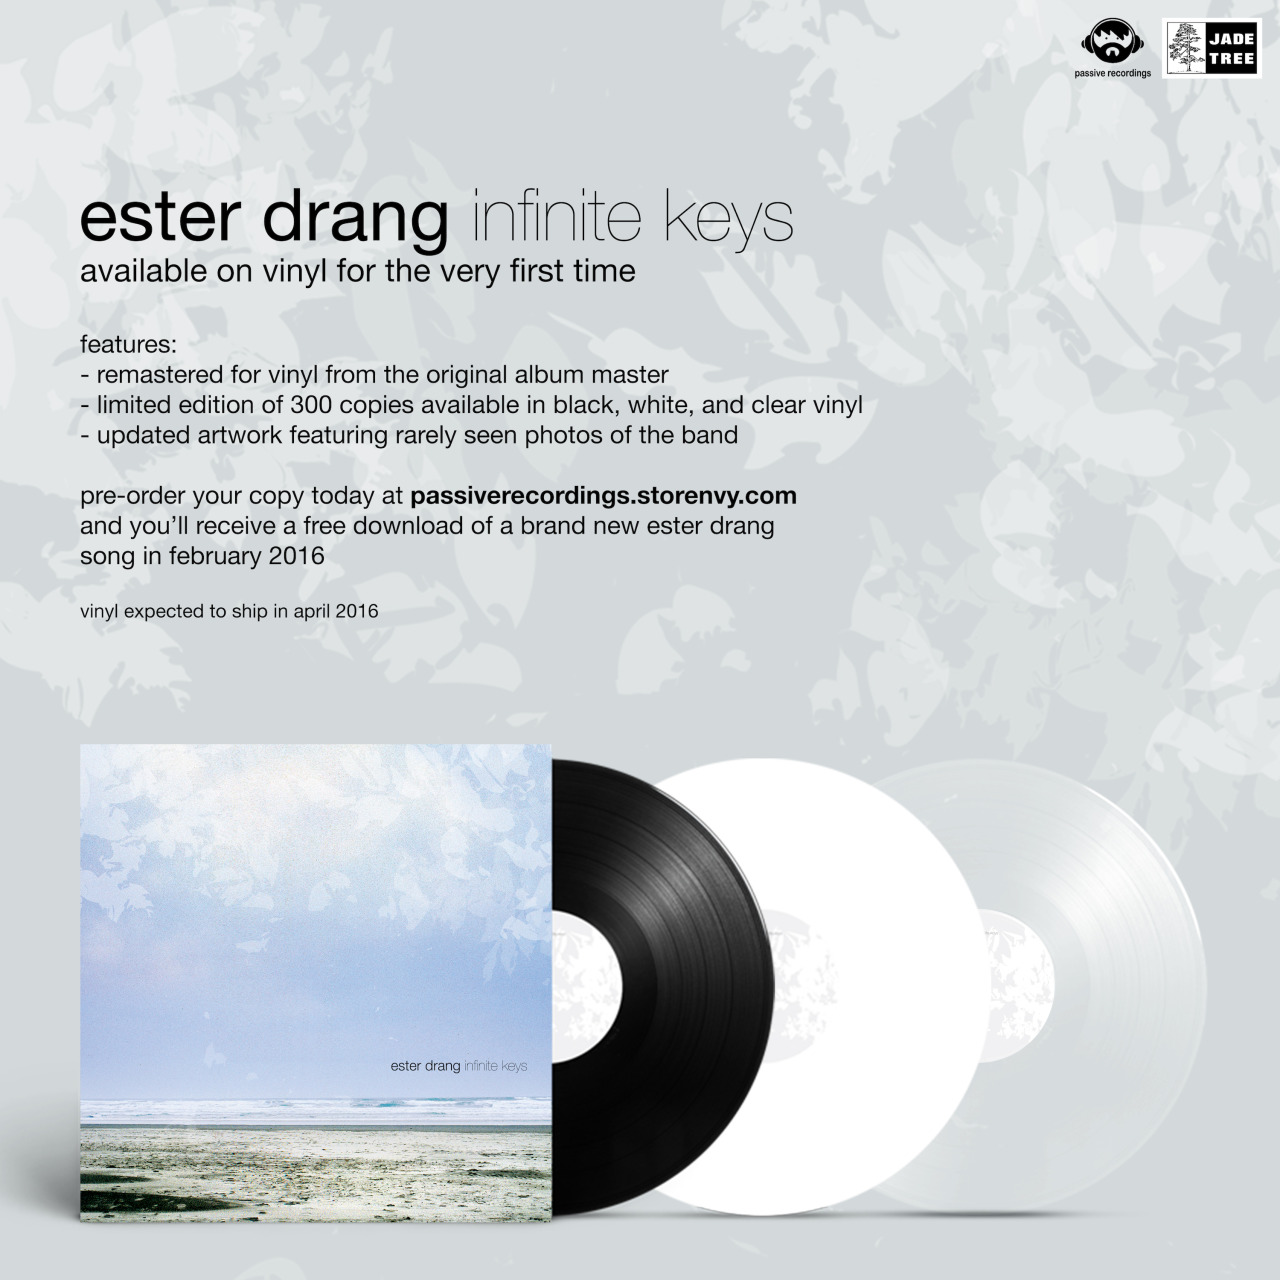 Passive Recordings  is pressing  Ester Drang 's 'Infinite Keys' to vinyl for the very first time. It's been remastered from the original tapes and the digital download includes a brand new Ester Drang song.  Pre-orders are available  here  and are expected to ship in April.